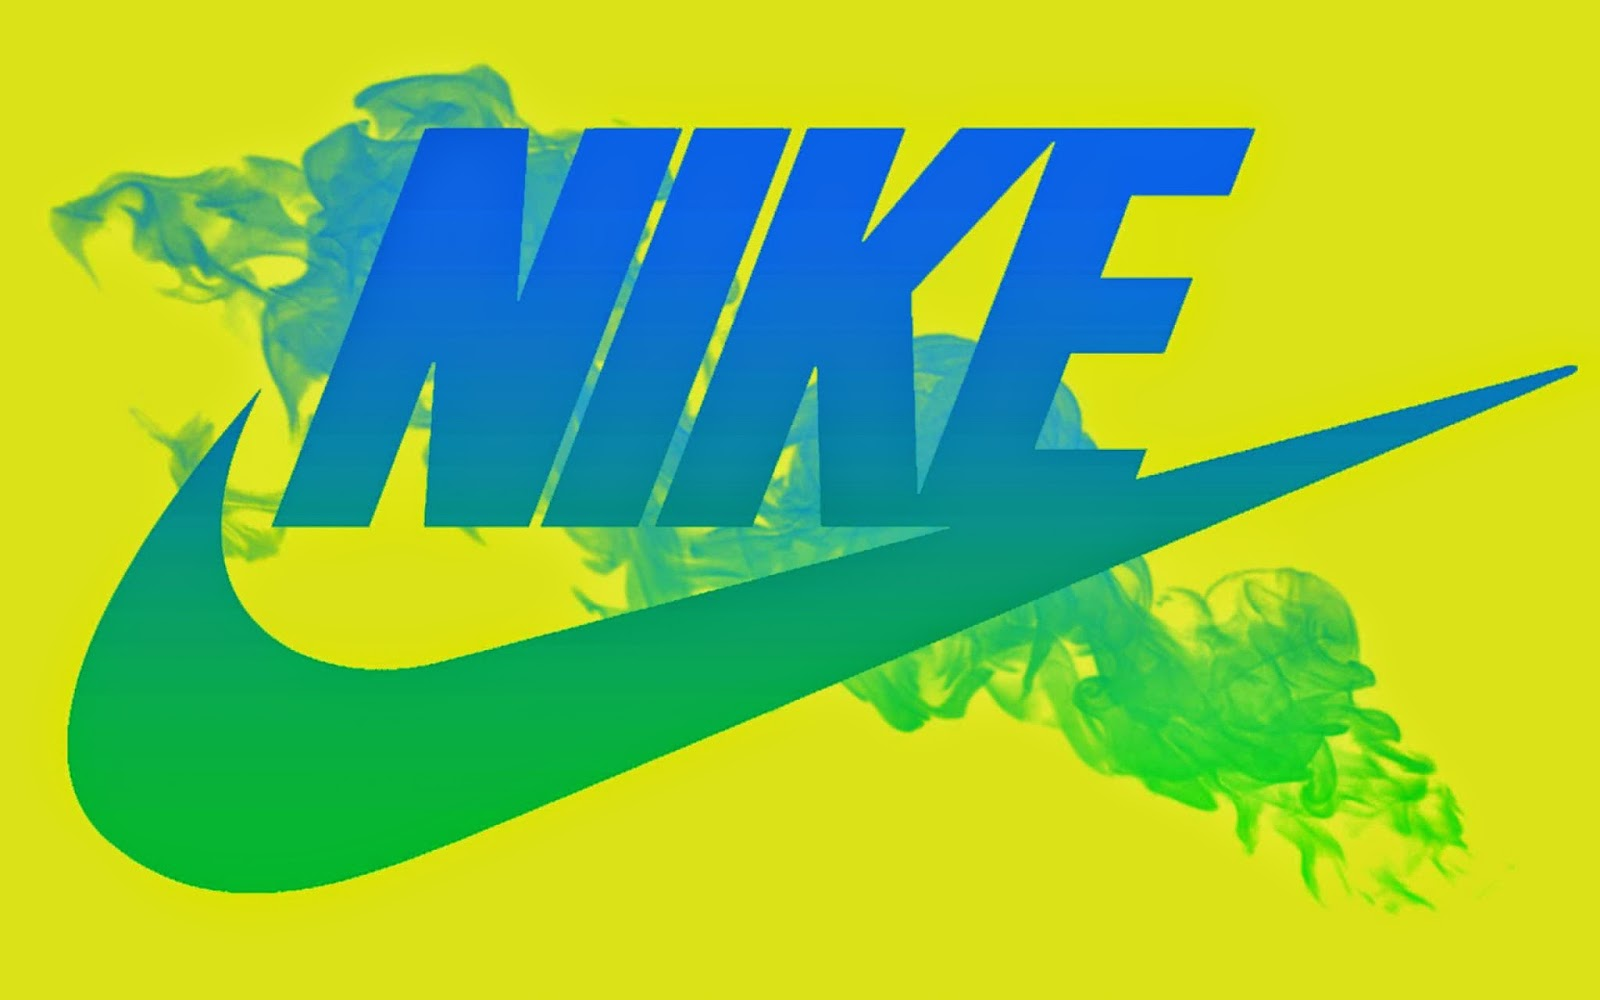 Wallpapers For Cool Blue Nike Logo Wallpaper Fashion S Feel Tips And Body Care